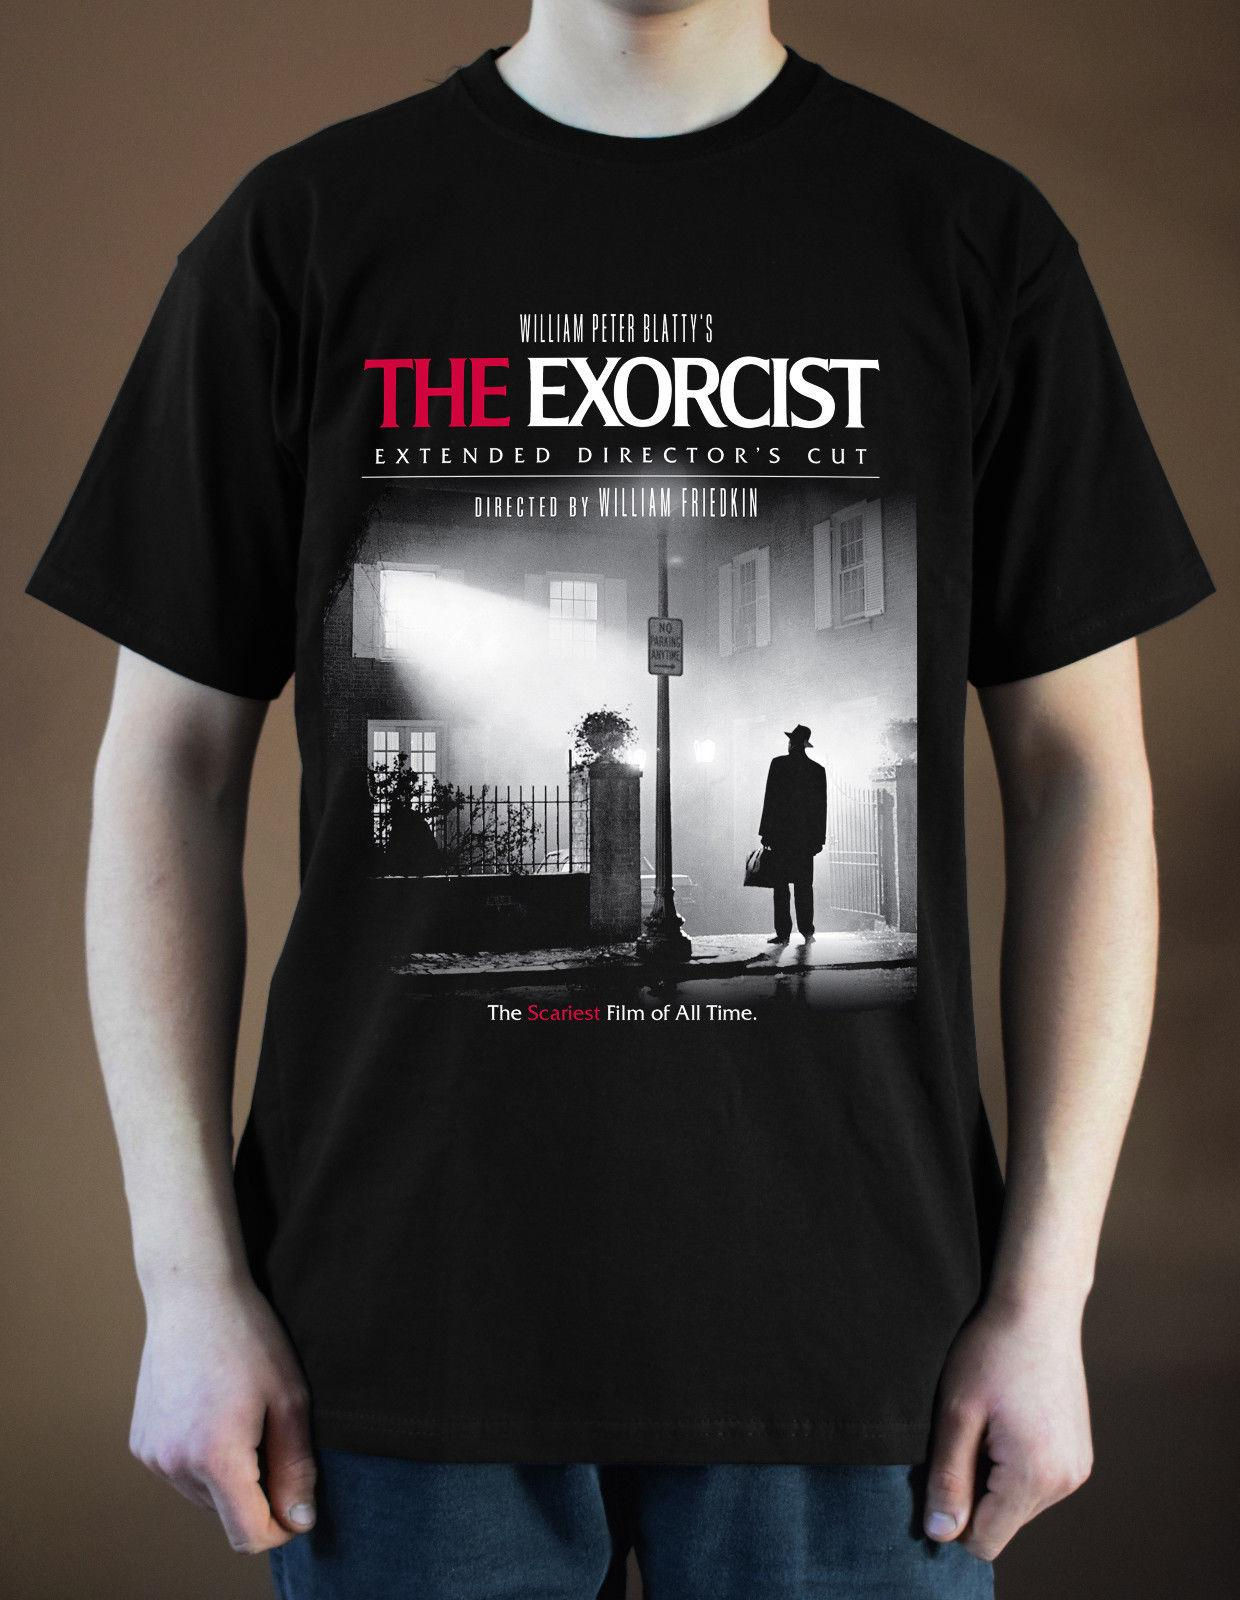 THE EXORCIST Movie Poester ver. 1 Horror William Friedkin T-Shirt (Nero) T-shirt uomo o-collo in 100% cotone casual manica corta